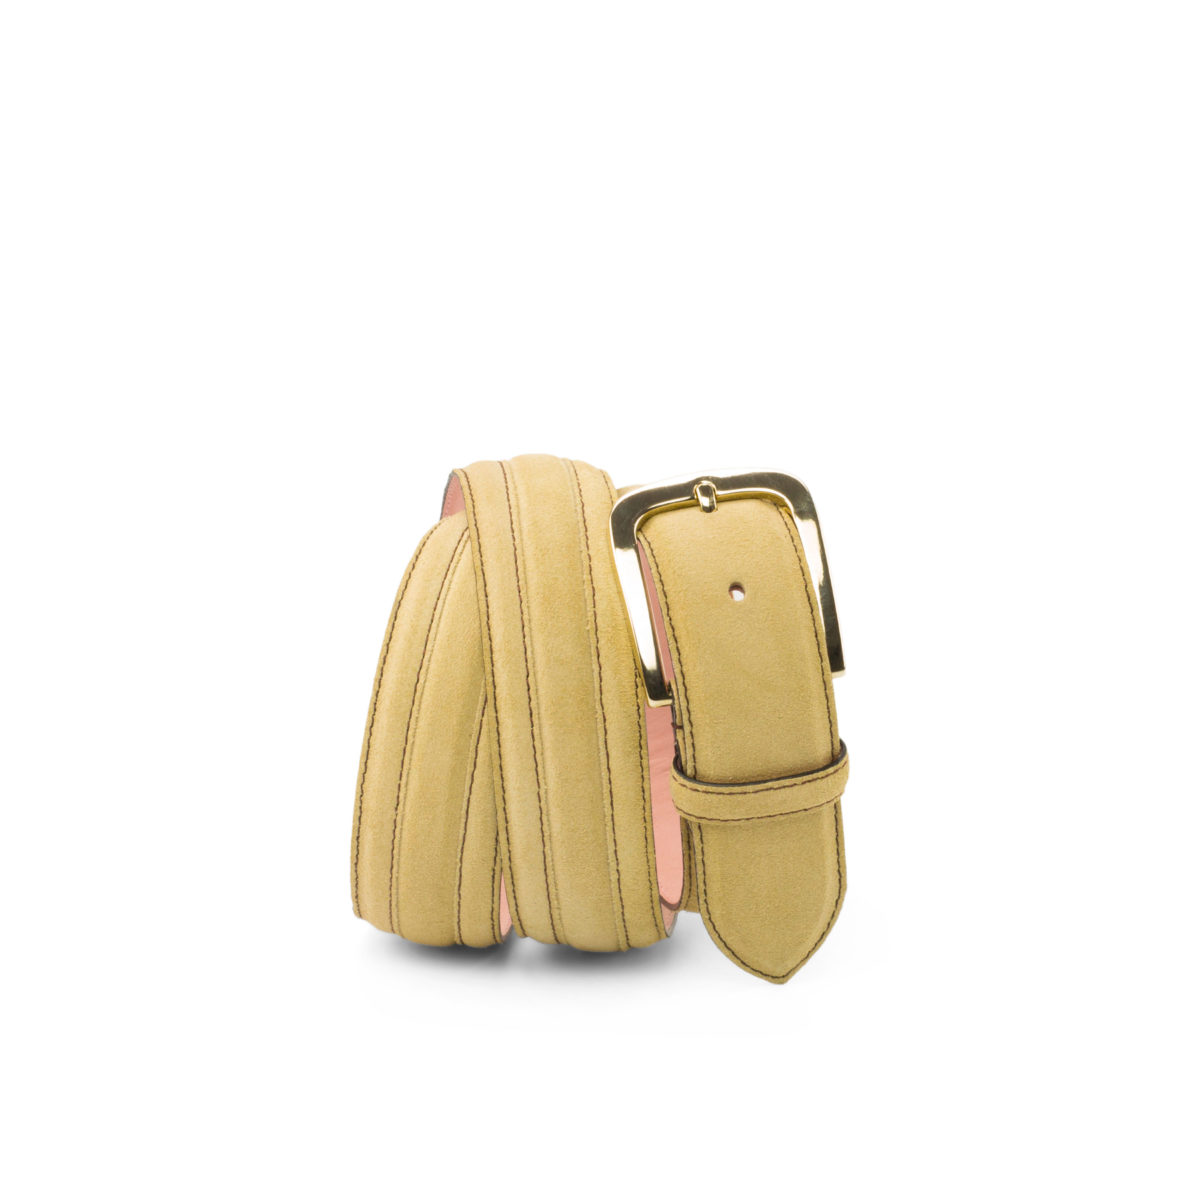 Bottom view of model Oaklawn, sand lux suede, pale rose nubuck, gold buckle Golf BespokeShoes